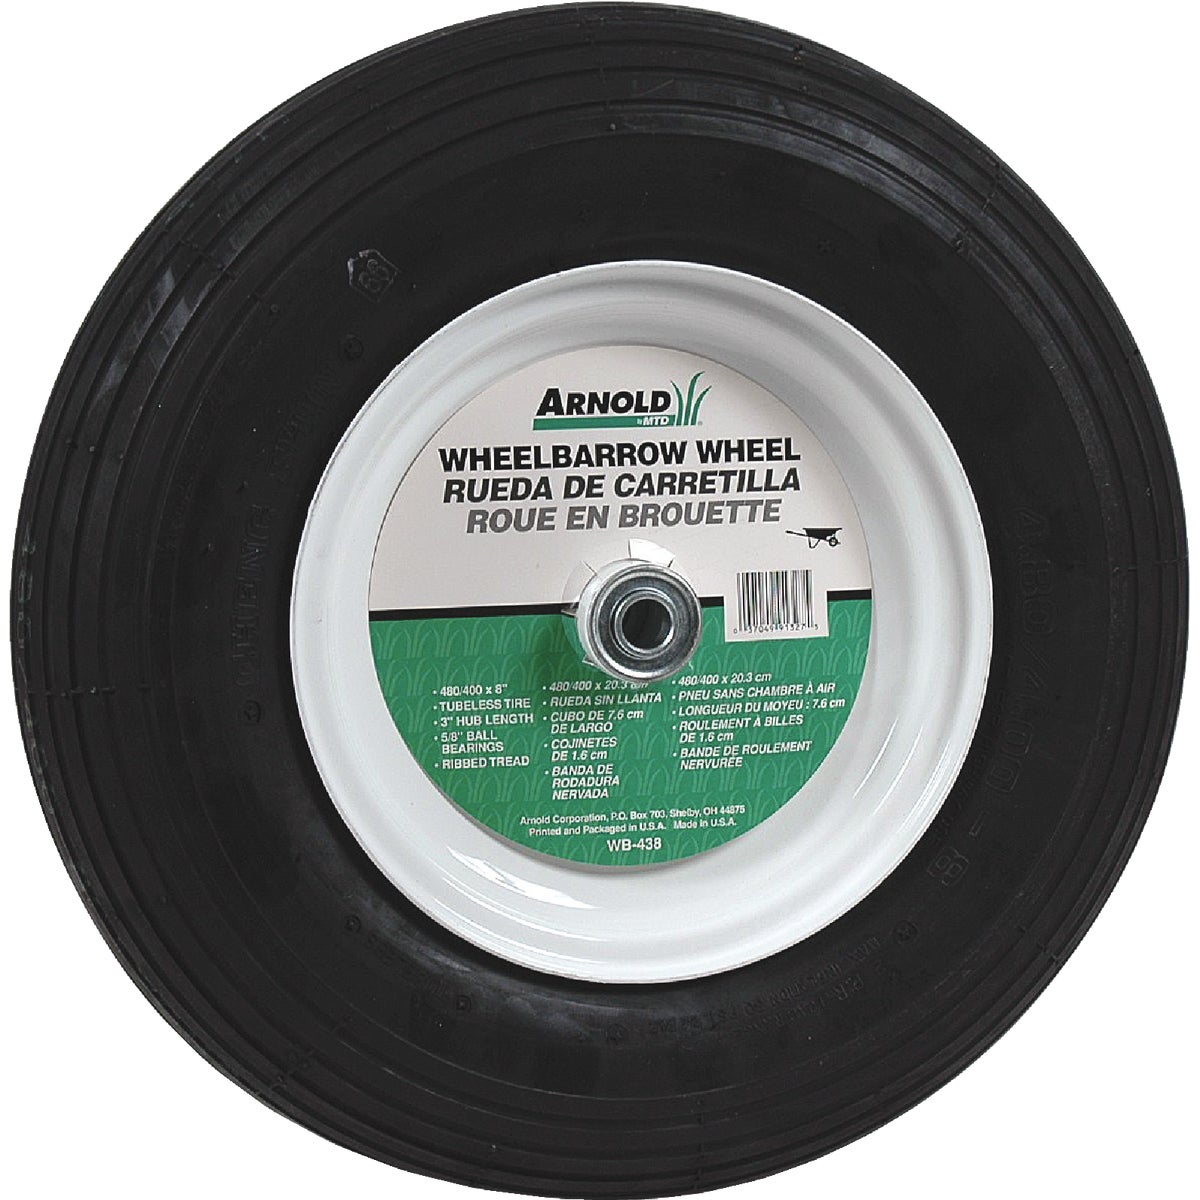 480/400X8 WHLBRW WHEEL - WB-438 by Arnold Corp